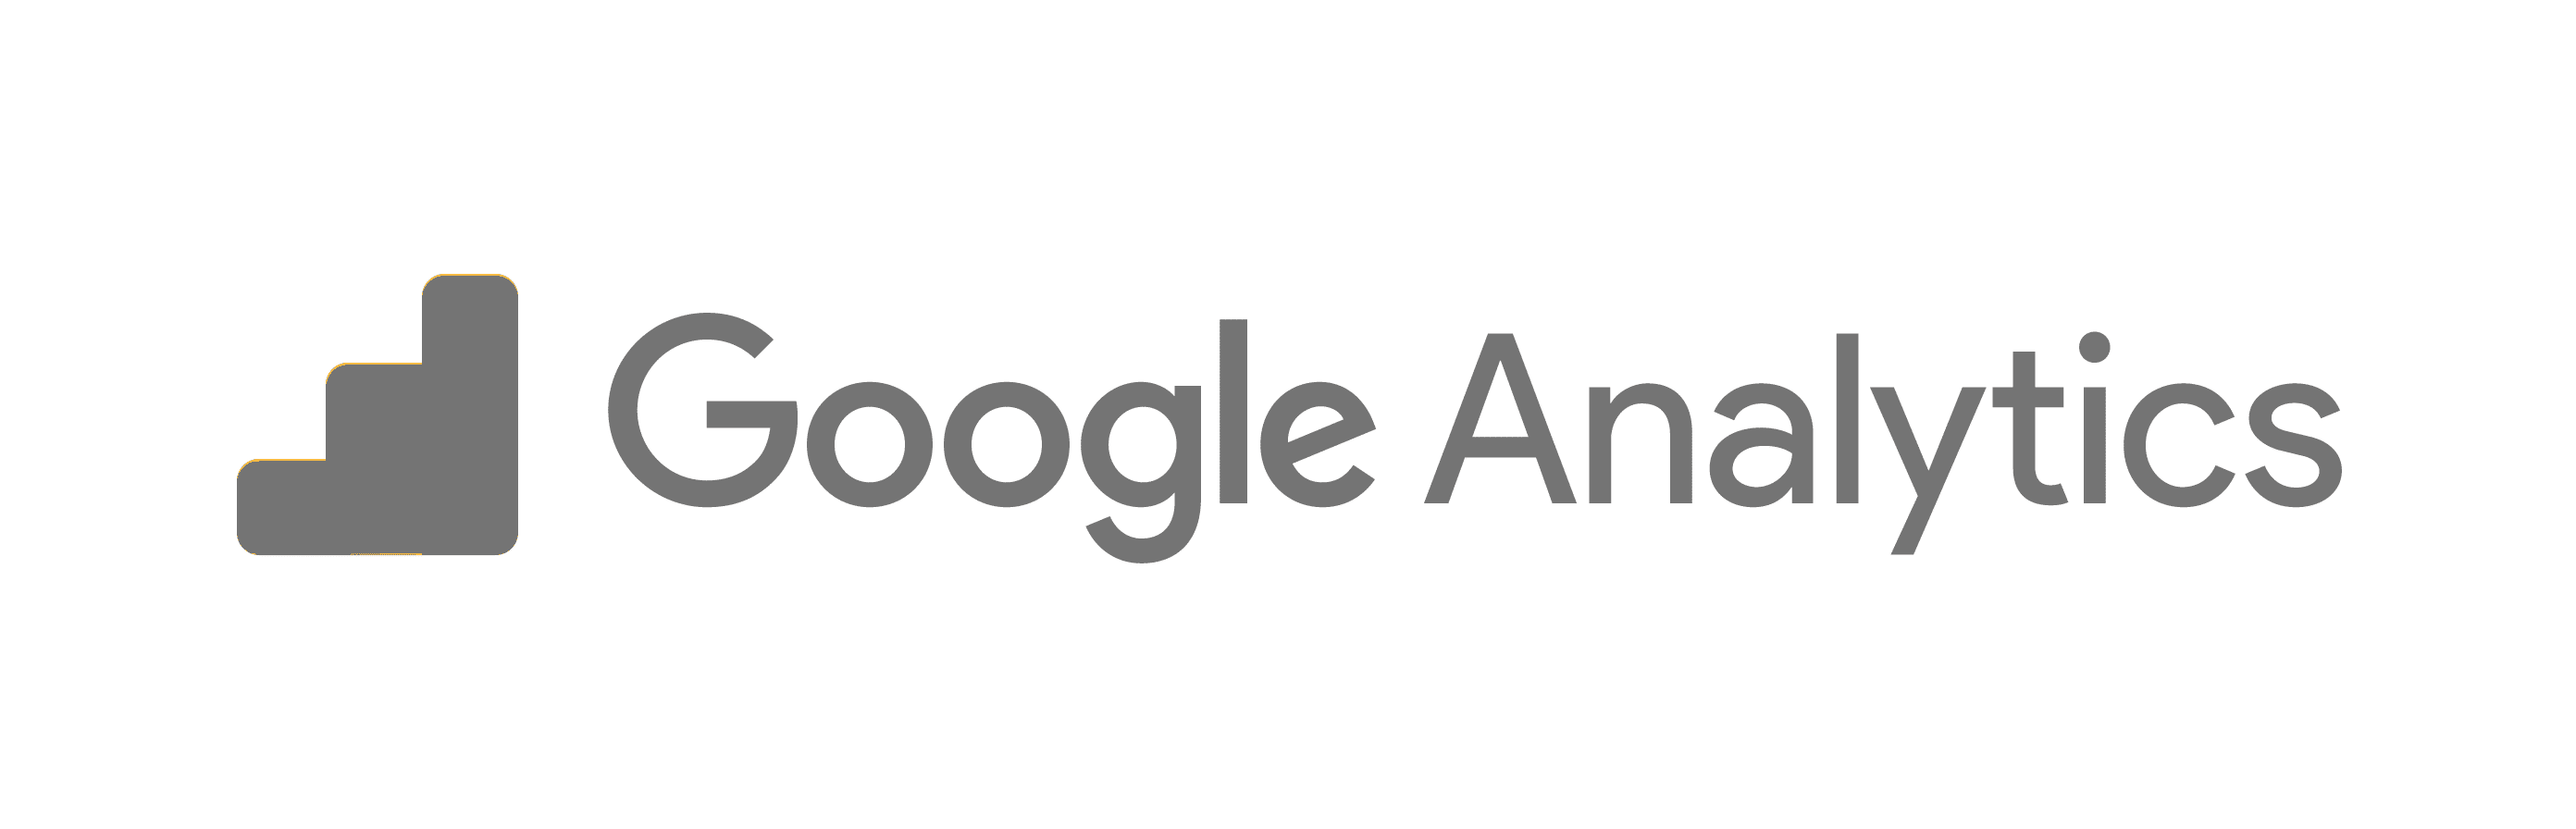 google-analytics-gray